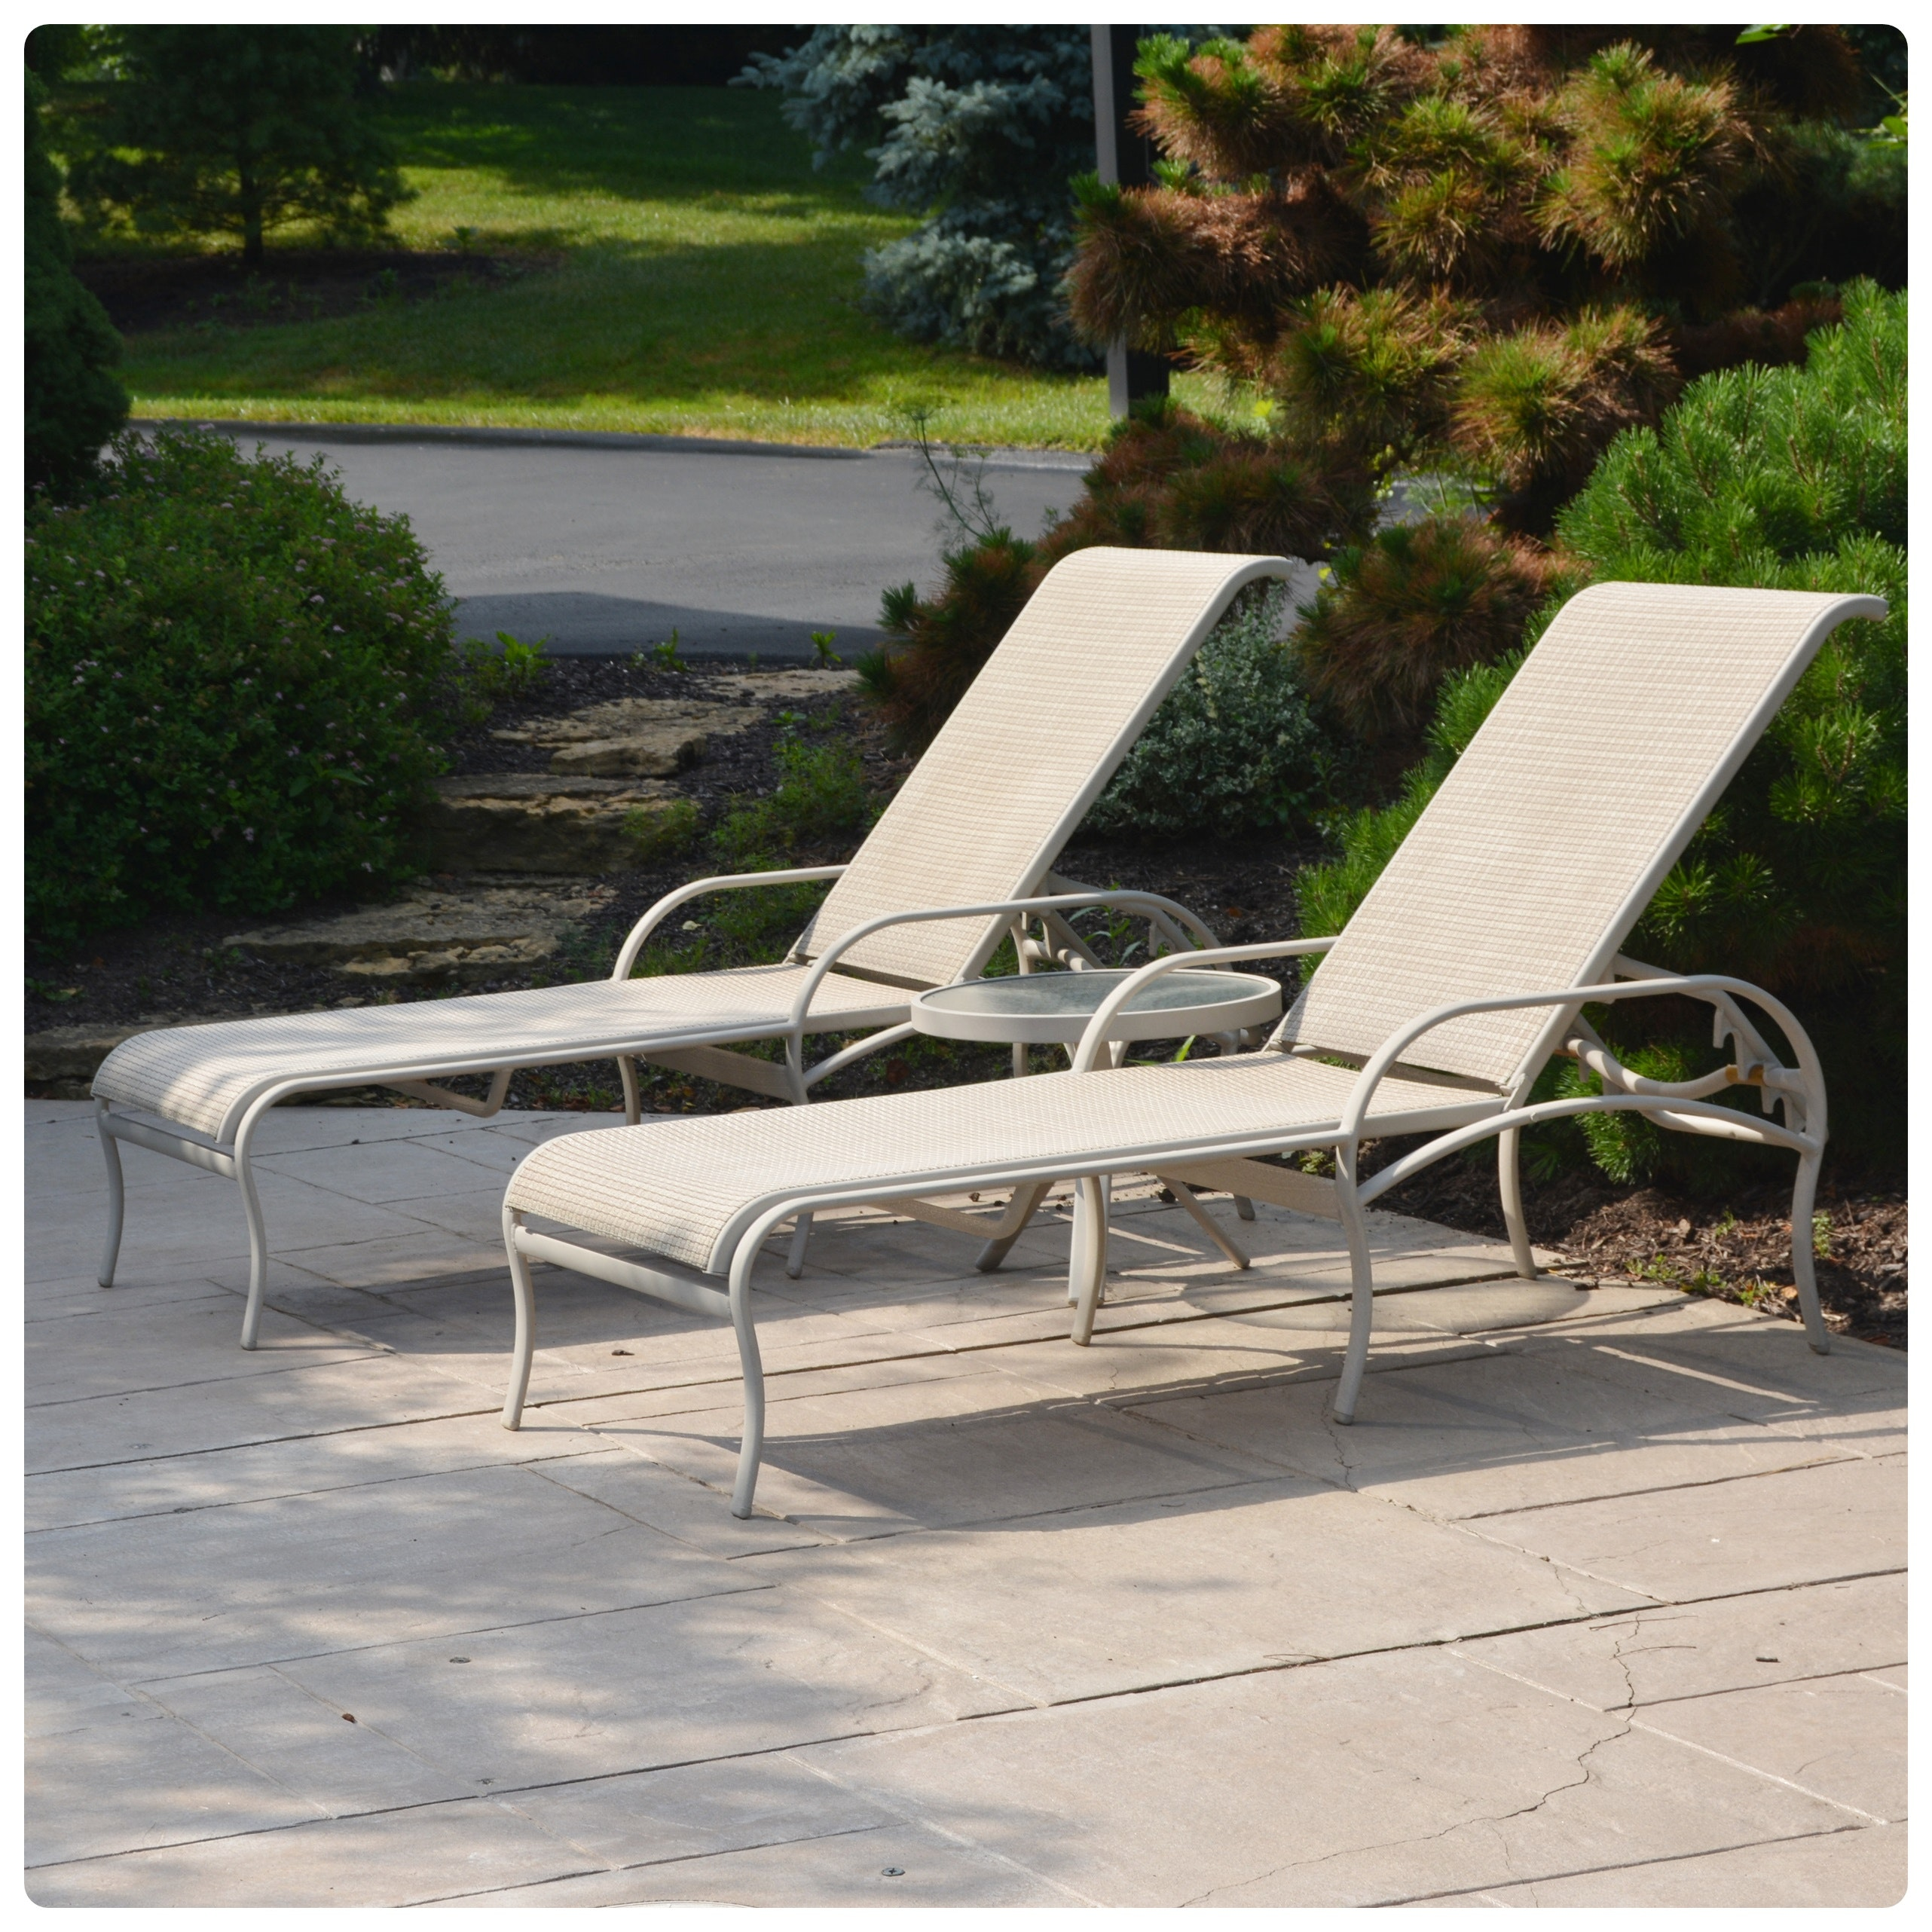 Tropitone Patio Lounge Chairs and Table